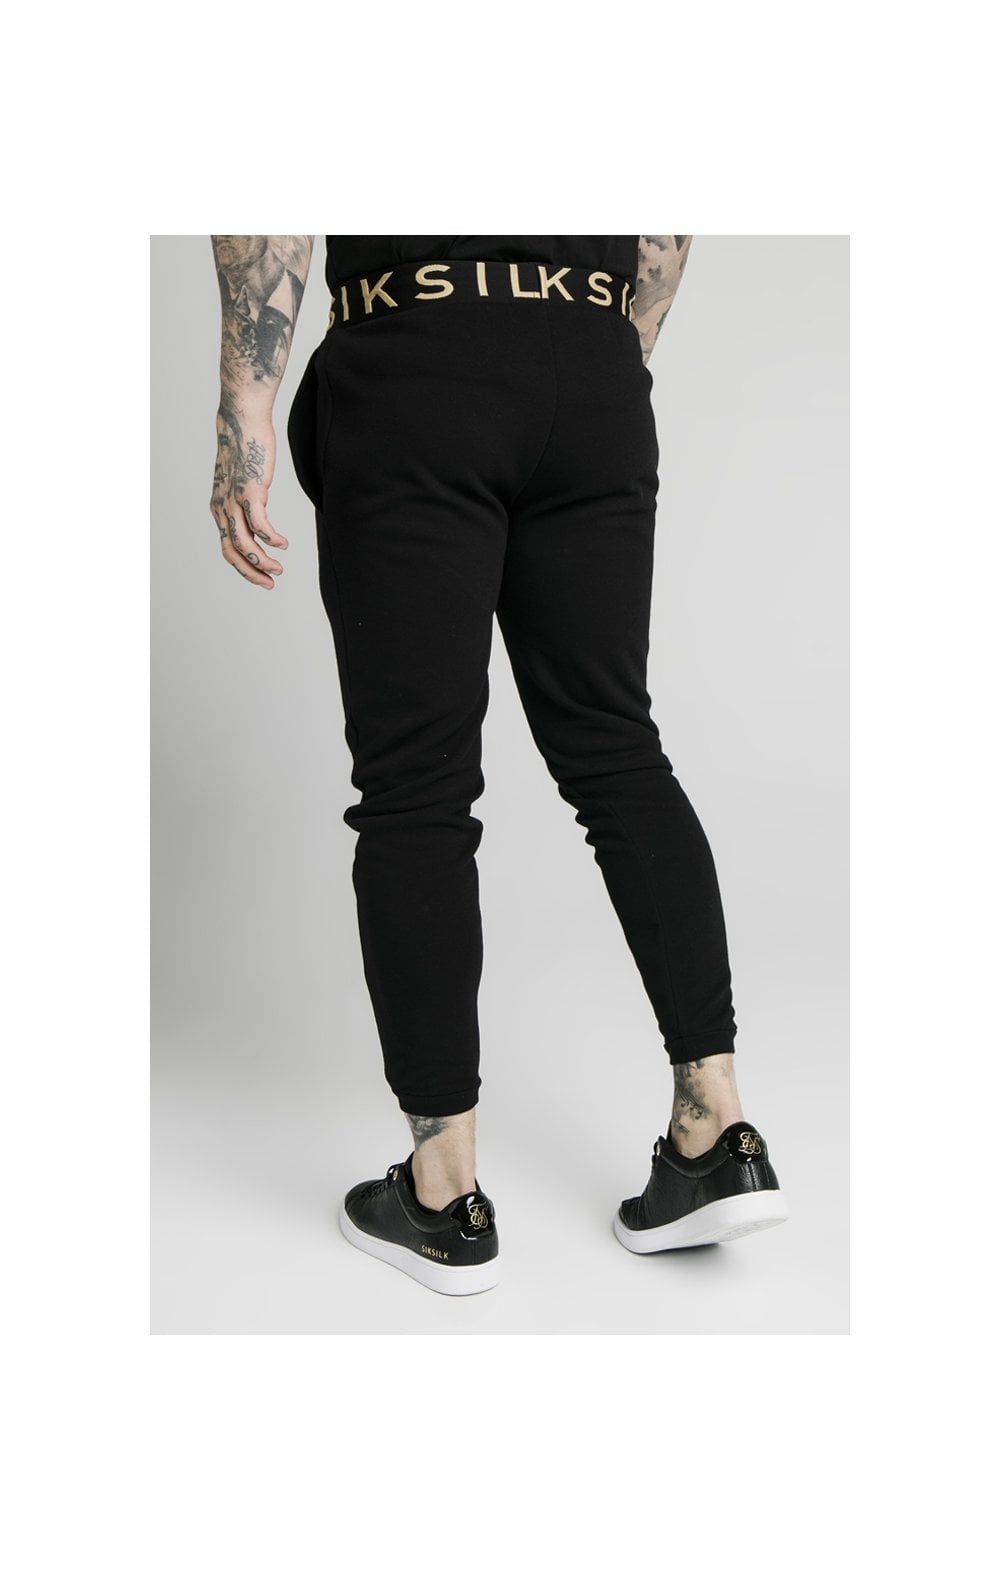 SikSilk Elastic Jacquard Pants - Black (2)